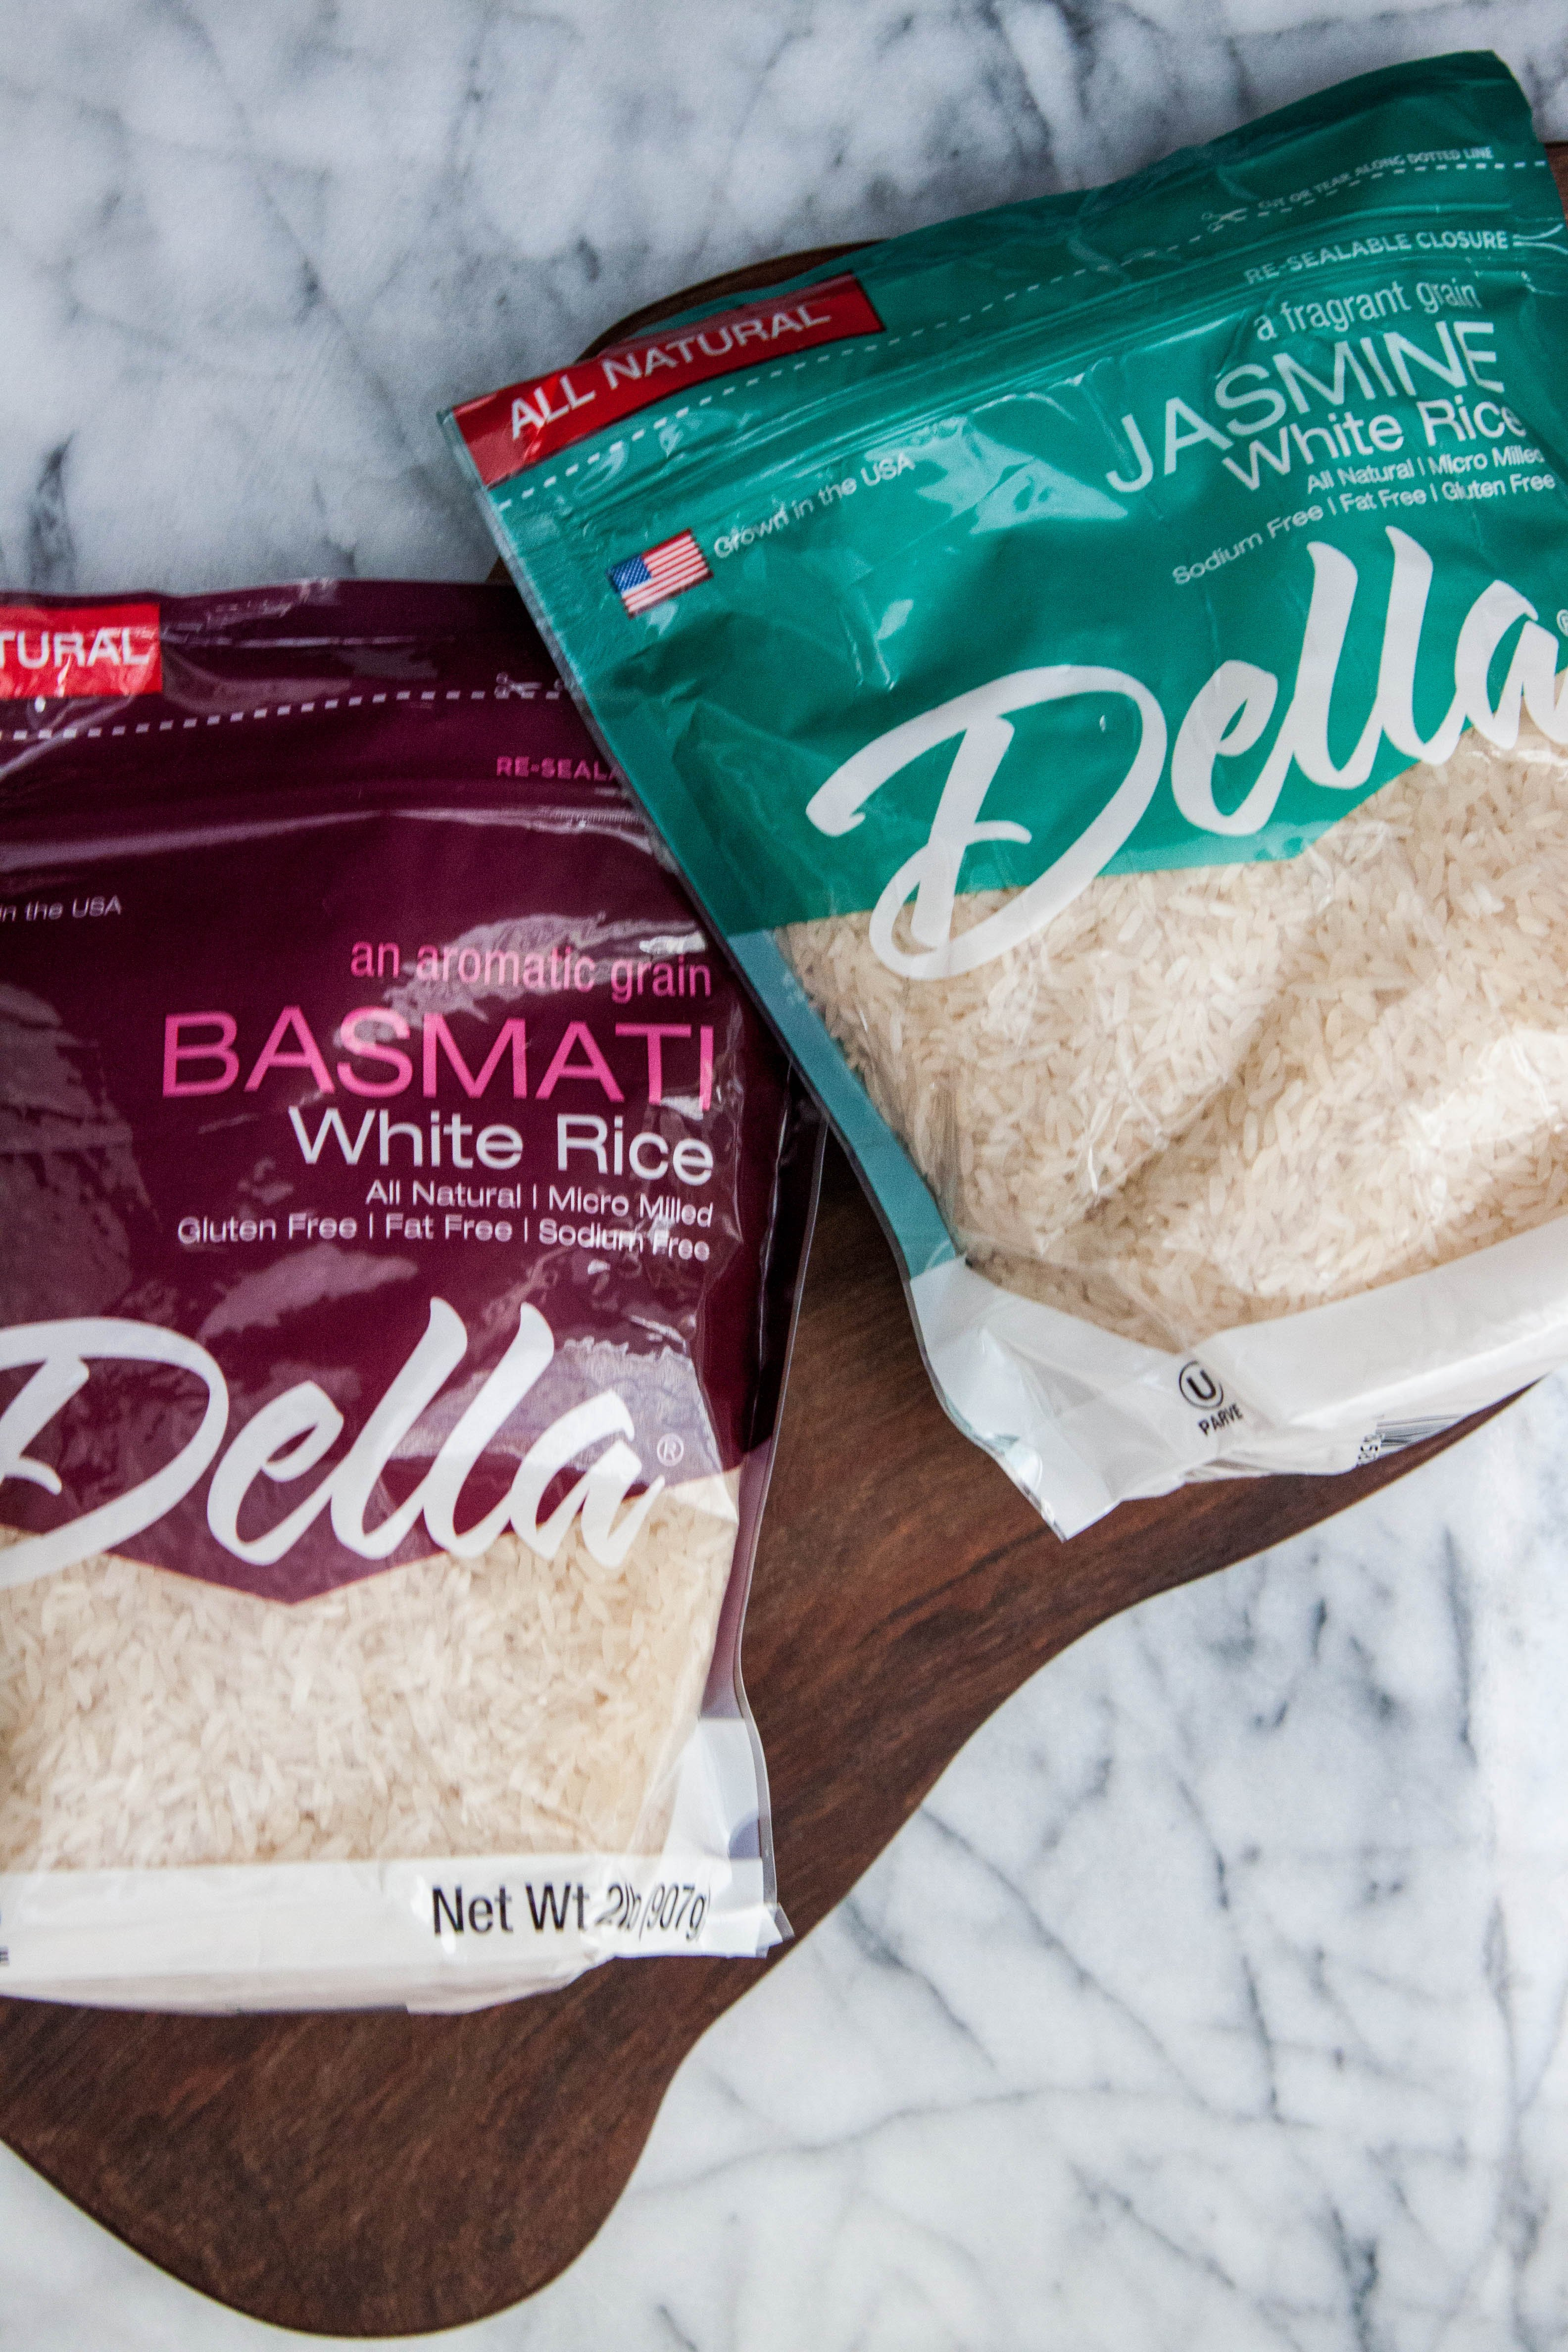 What Gives Jasmine and Basmati Rice Their Fragrance? | Kitchn